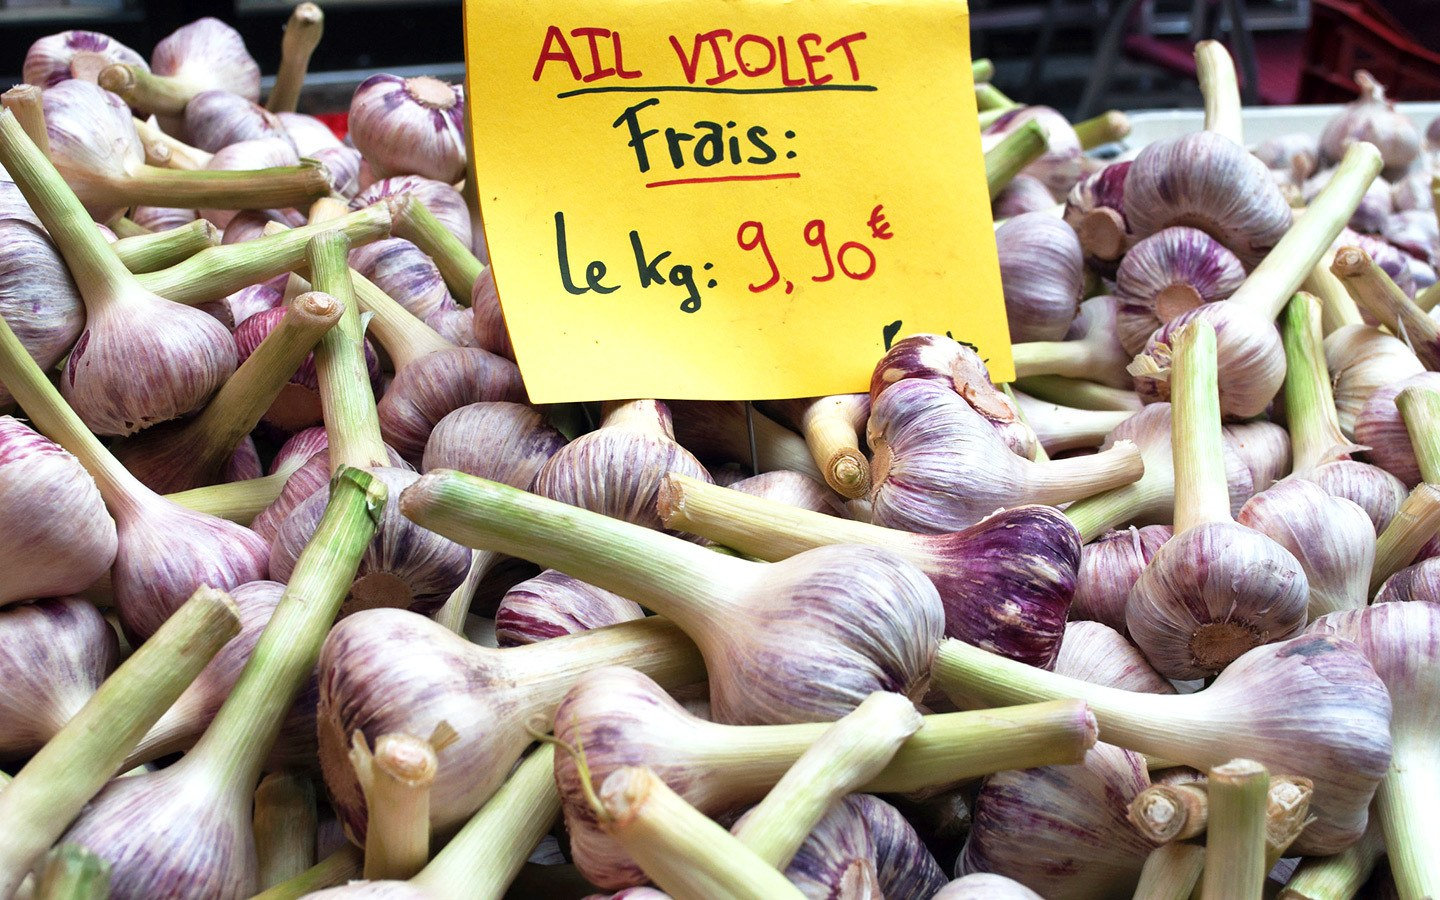 Garlic stall at the market in France